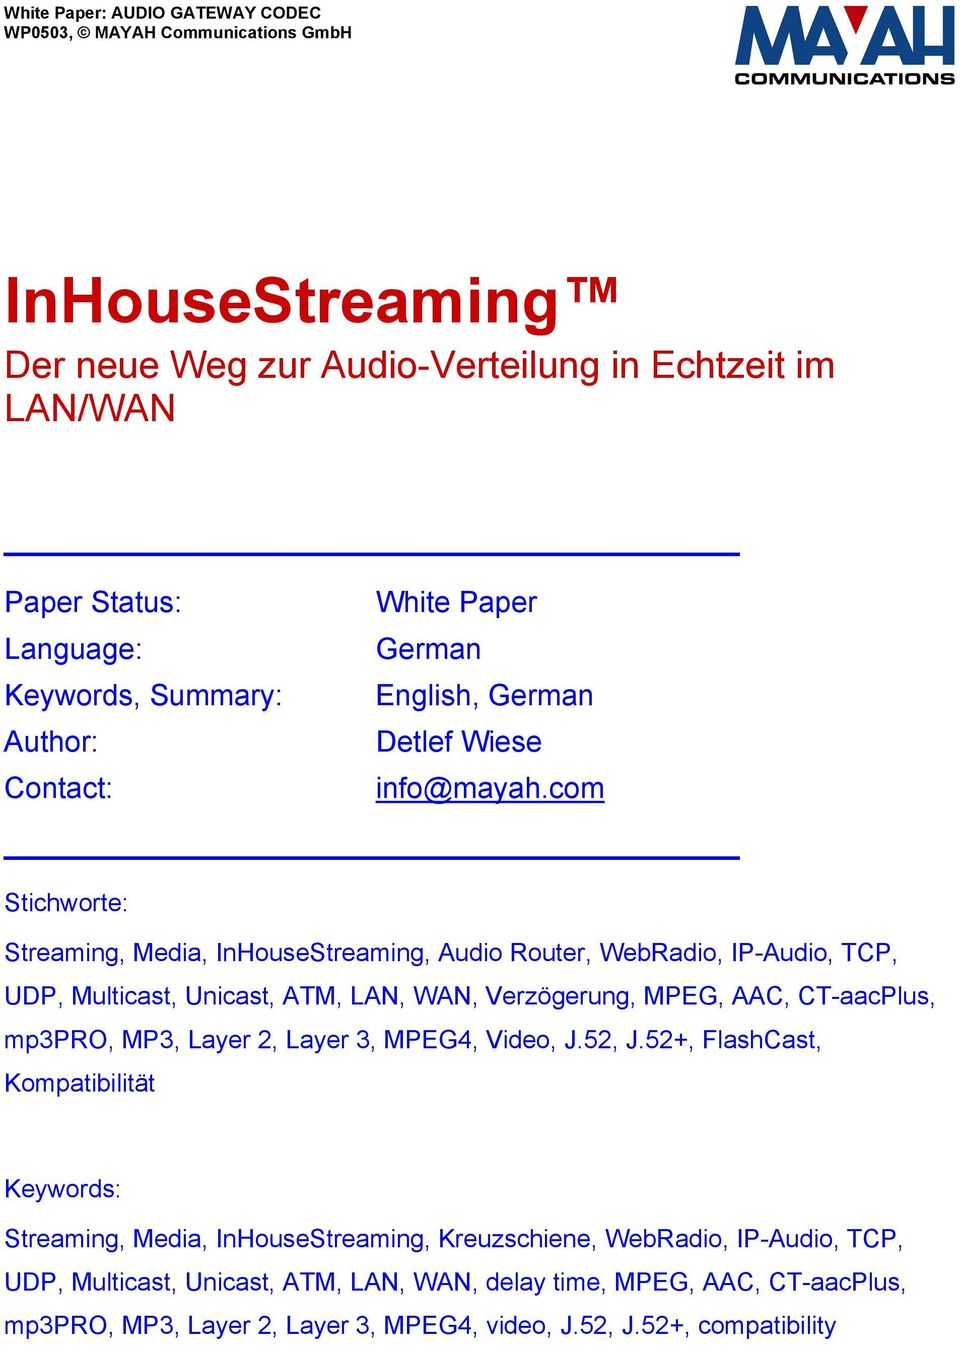 com Stichworte: Streaming, Media, InHouseStreaming, Audio Router, WebRadio, IP-Audio, TCP, UDP, Multicast, Unicast, ATM, LAN, WAN, Verzögerung, MPEG, AAC, CT-aacPlus, mp3pro, MP3, Layer